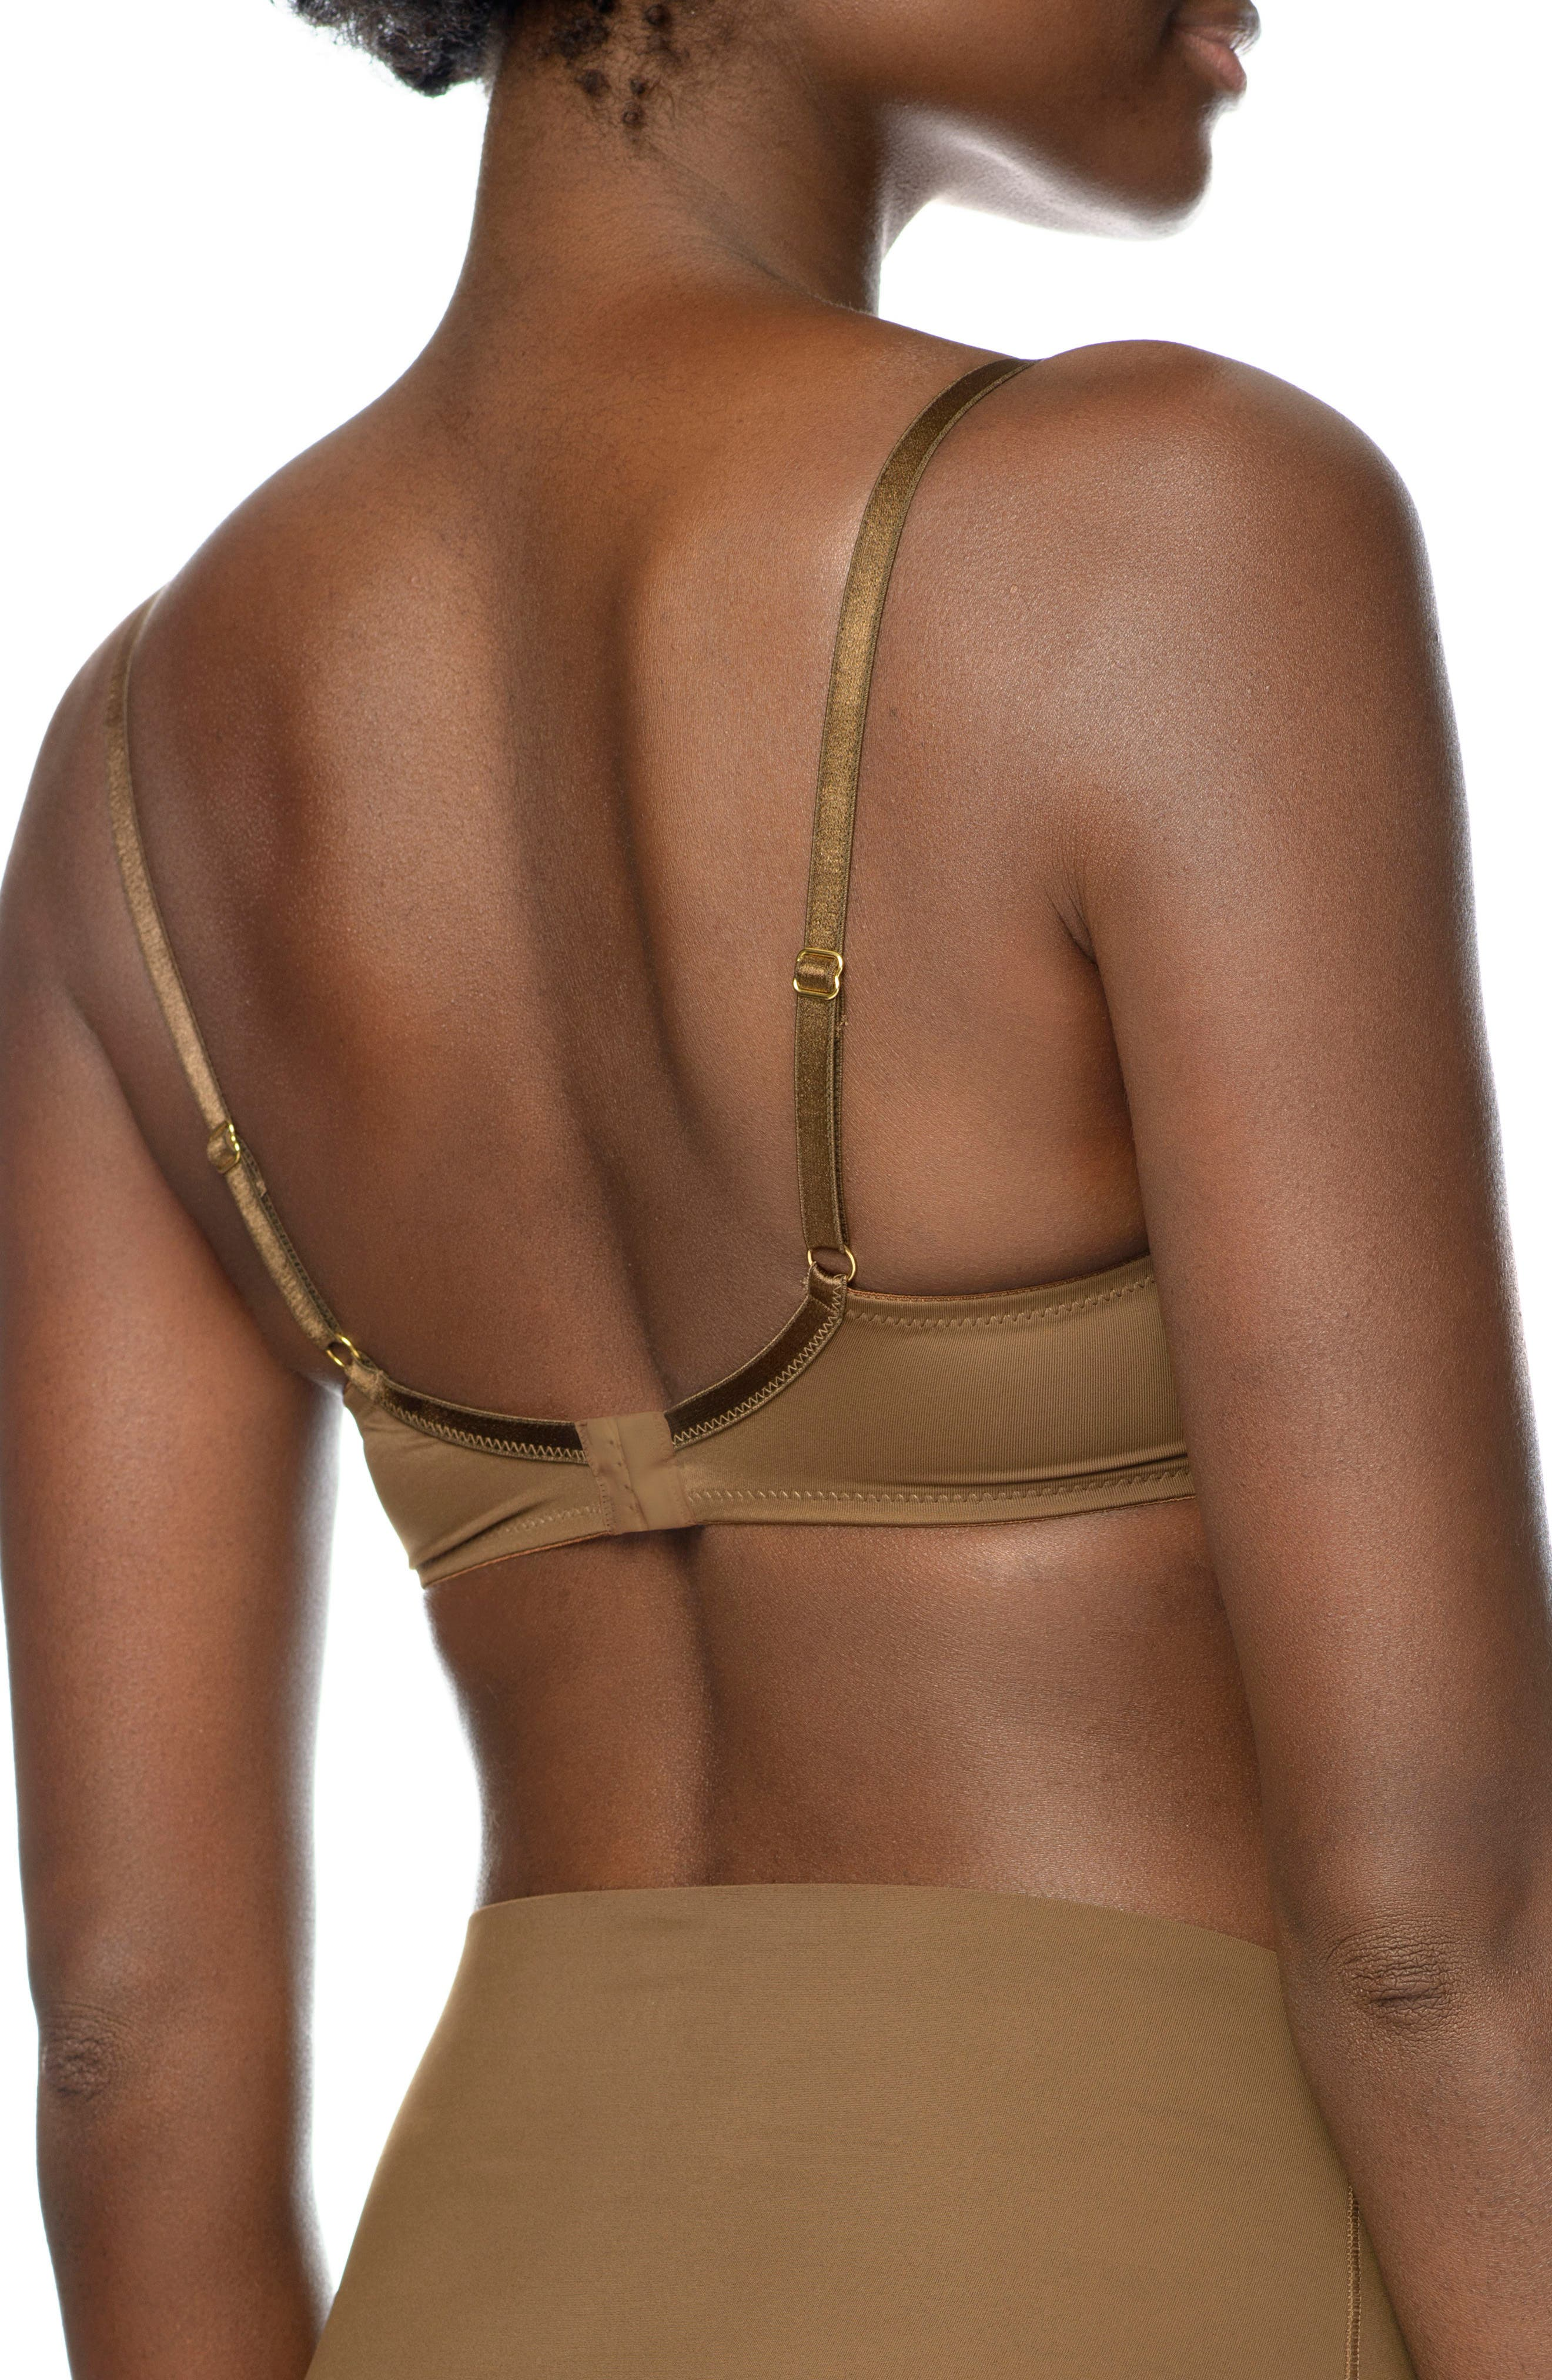 NUBIAN SKIN,                             Naked High Waist Briefs,                             Main thumbnail 1, color,                             200